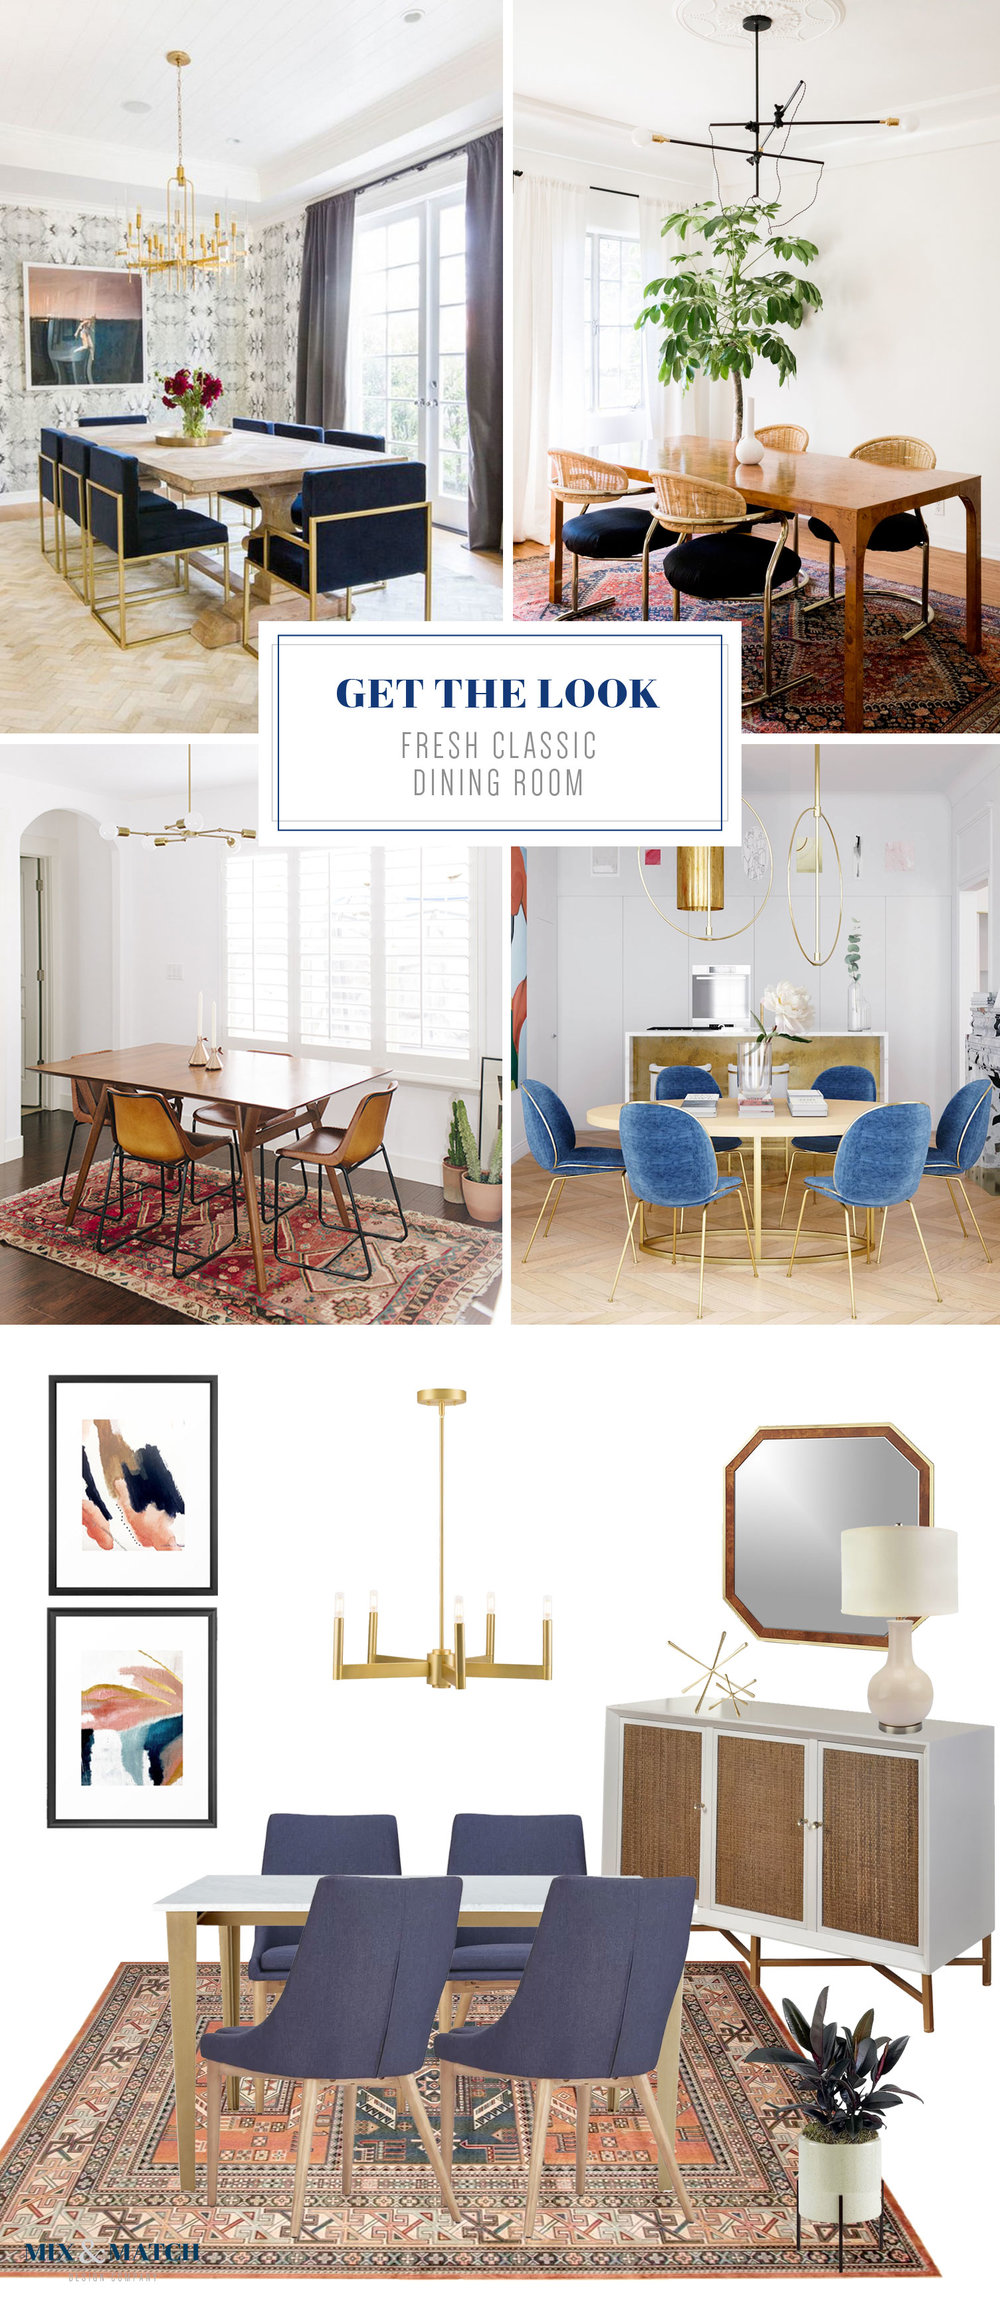 Get the look of this fresh classic dining room on the blog! This dining room has a mashup of styles that includes touches of glam, coastal, and mid-century.